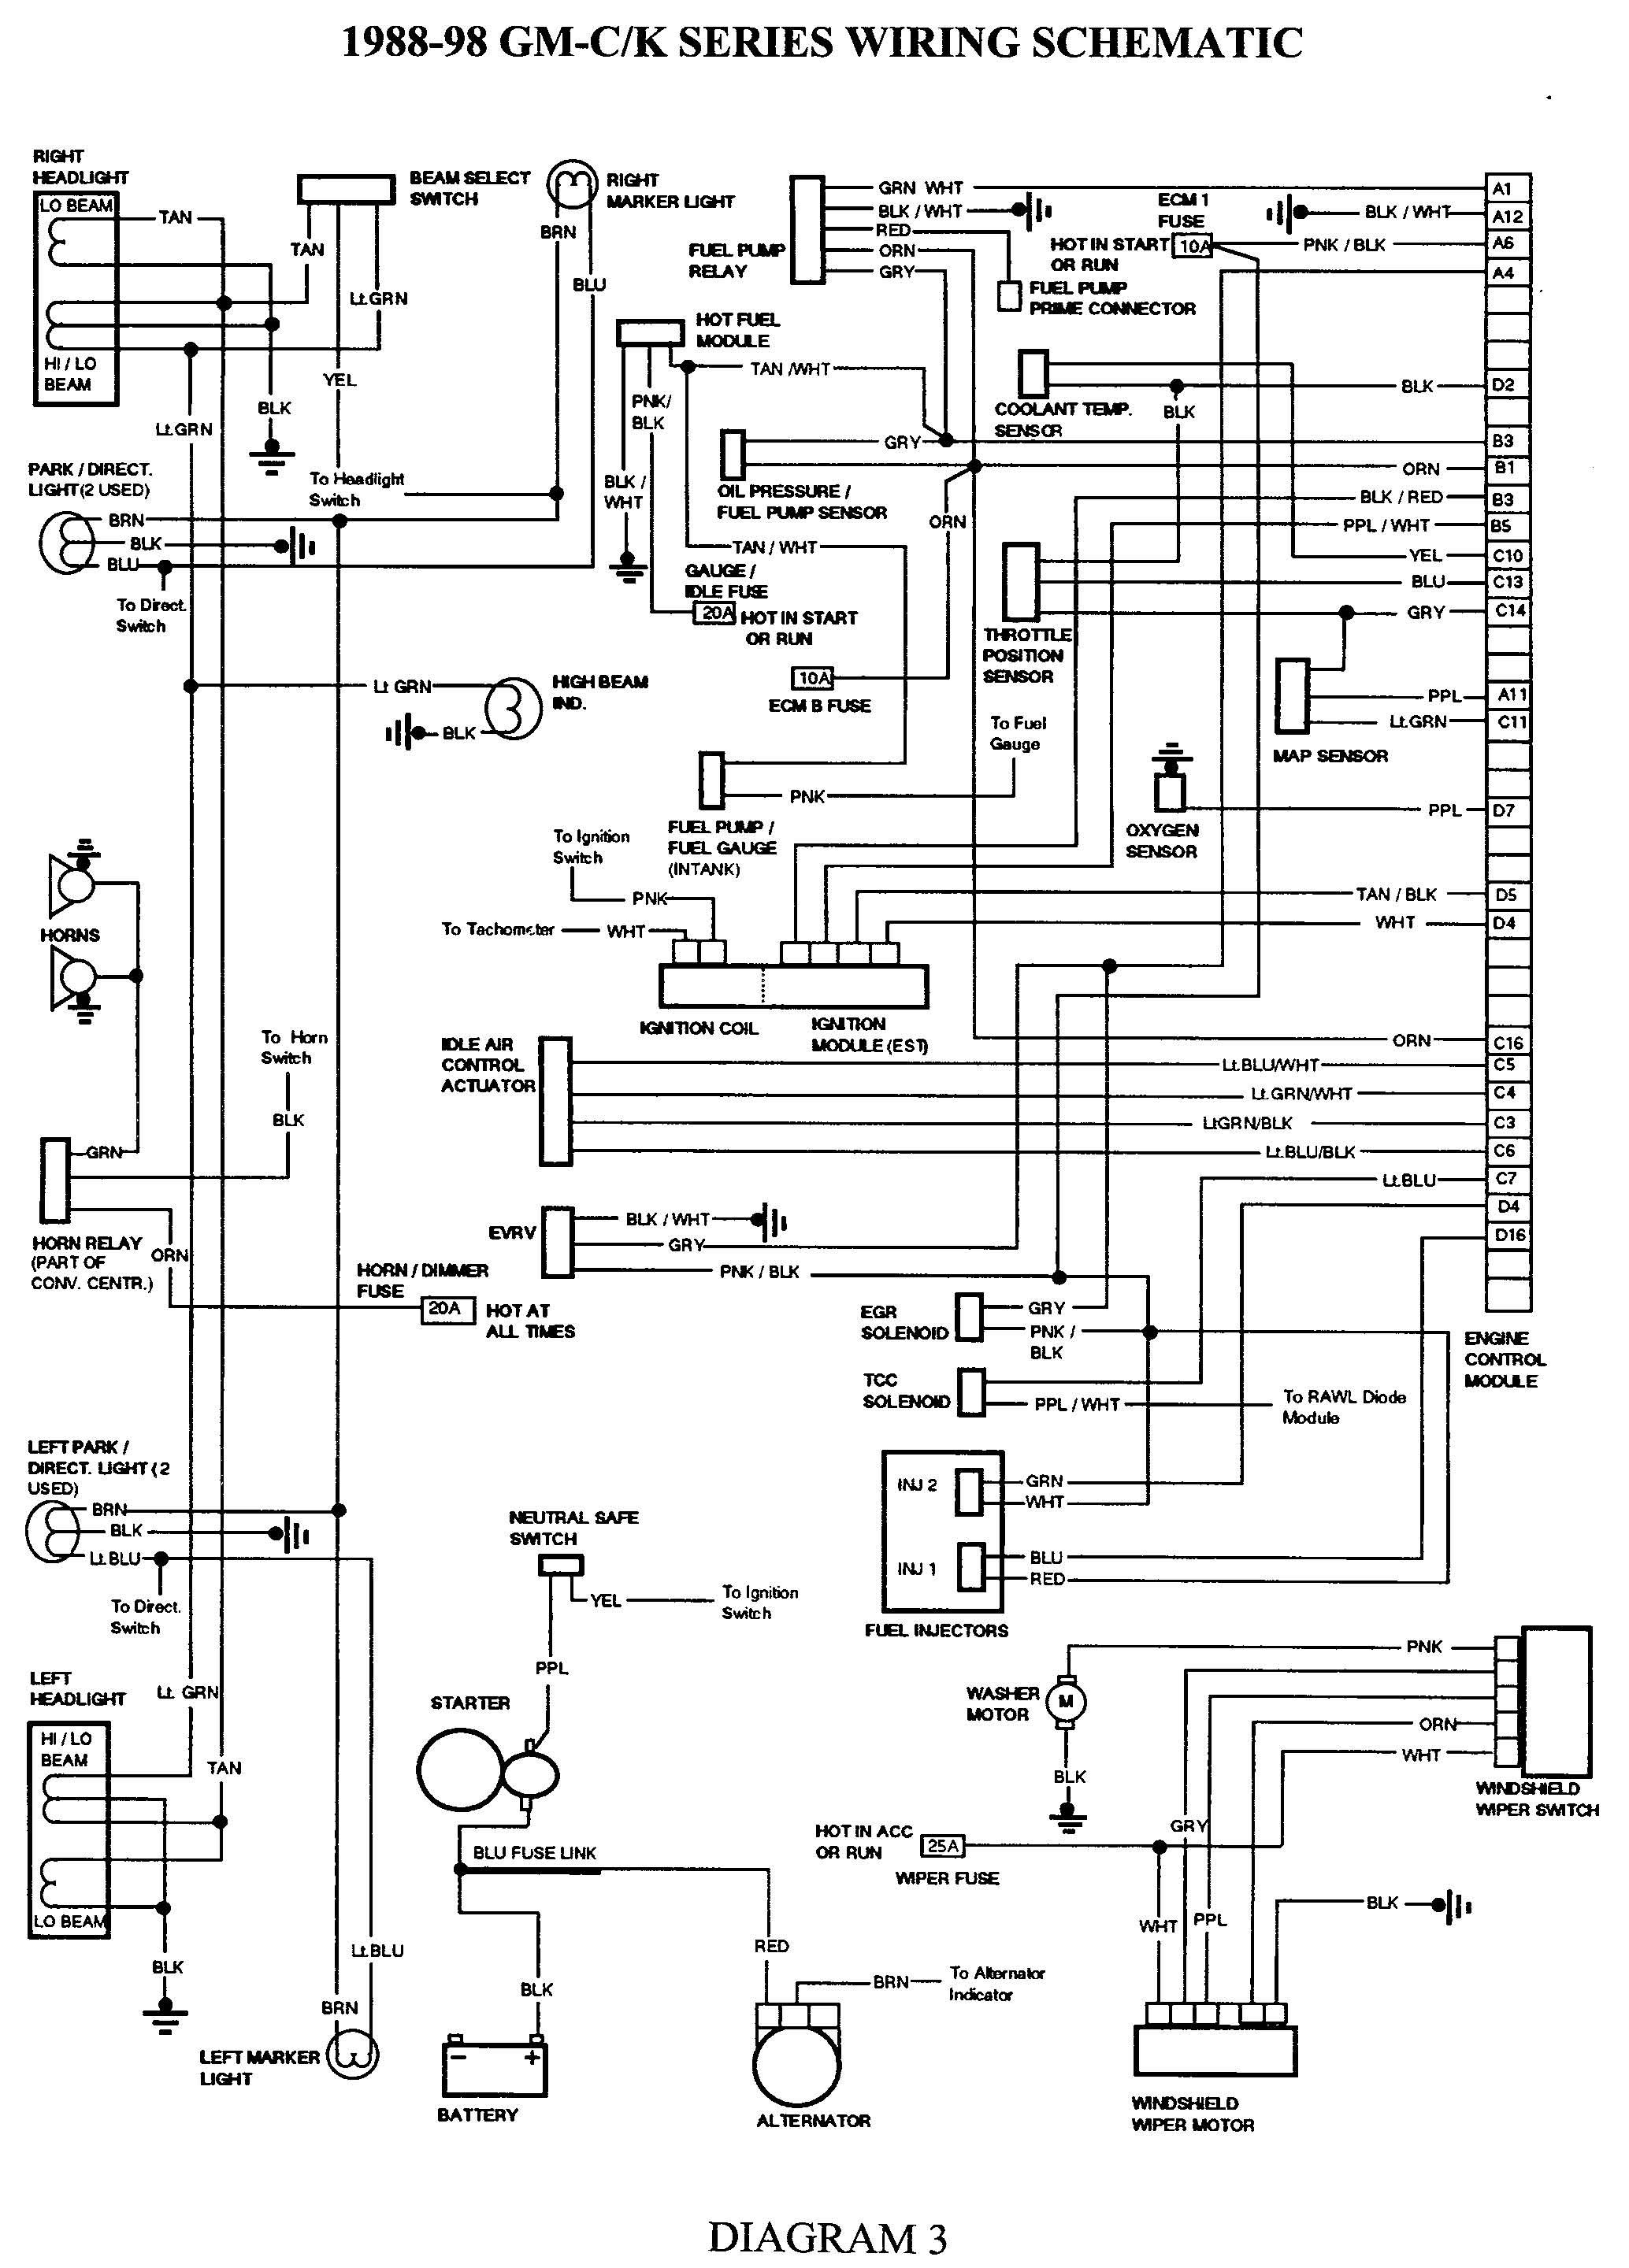 1996 s10 radio wiring diagram 1967 honda ct90 gmc truck diagrams on gm harness 88